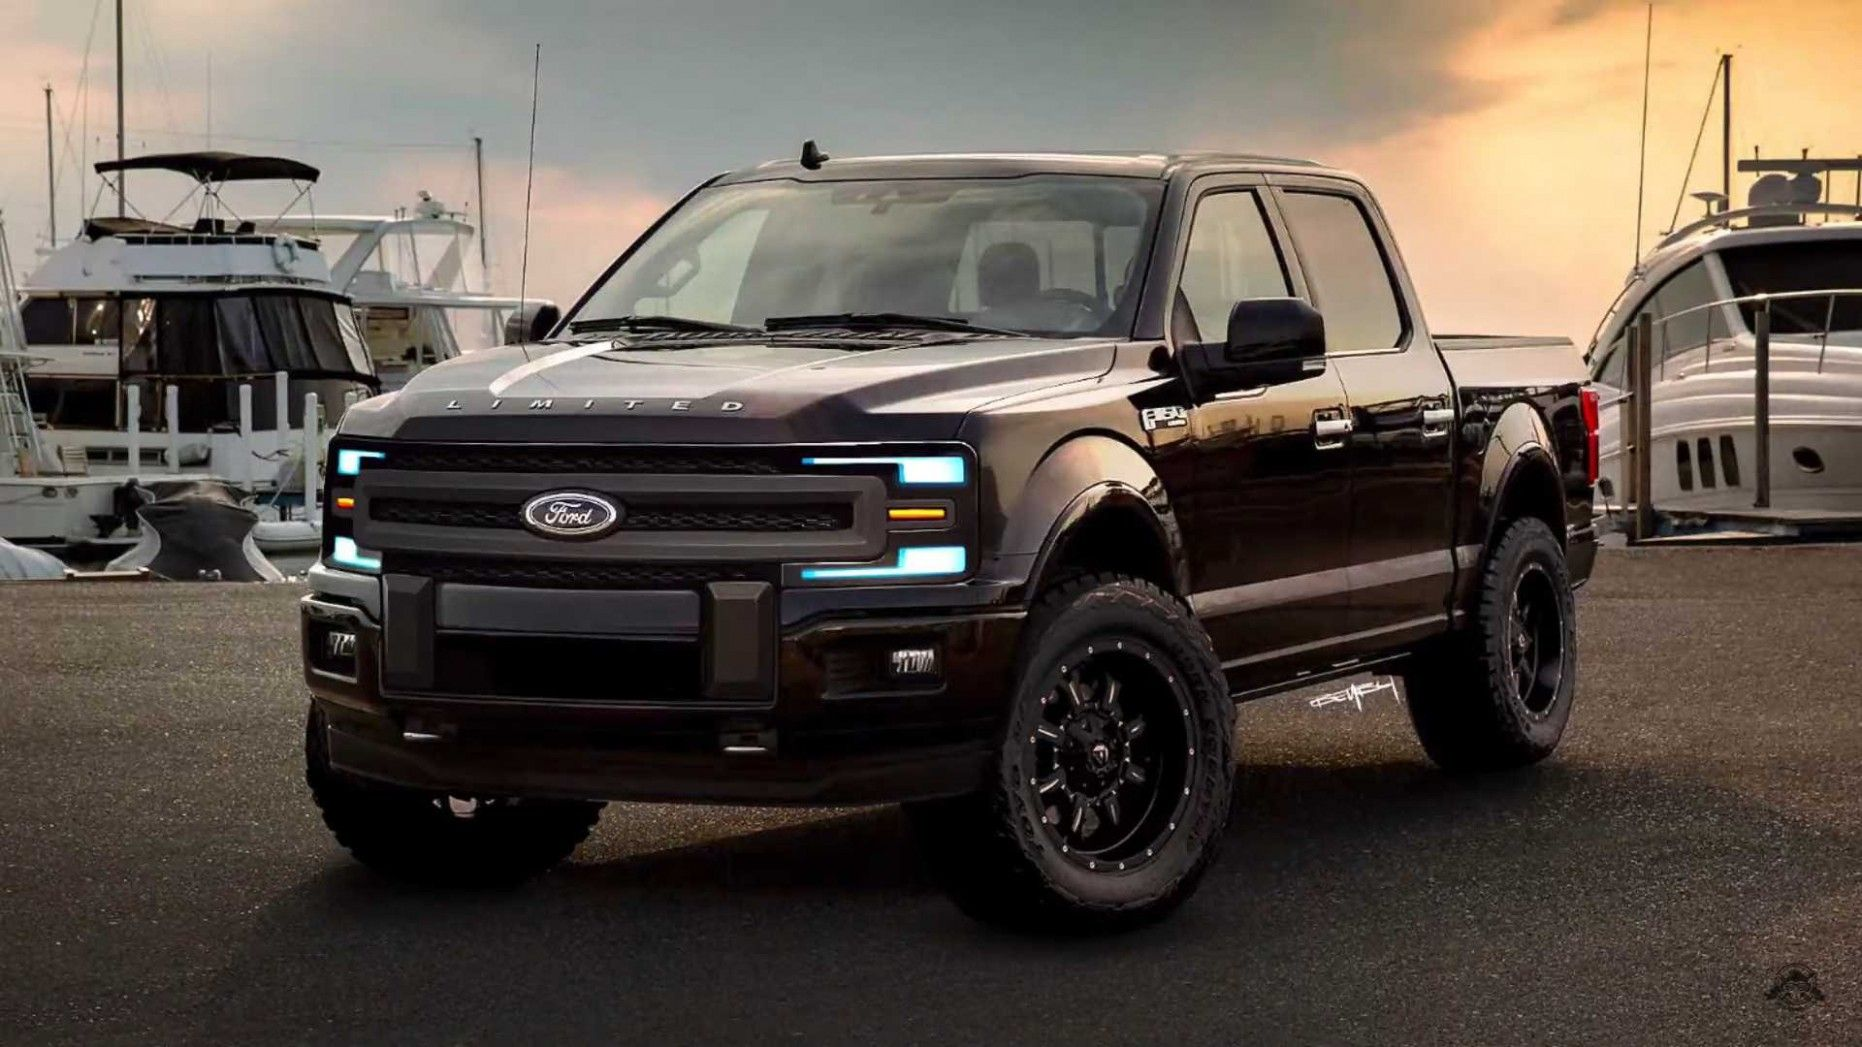 2021 Ford Ranger Usa Spy Shoot In 2020 Ford F150 Ford F250